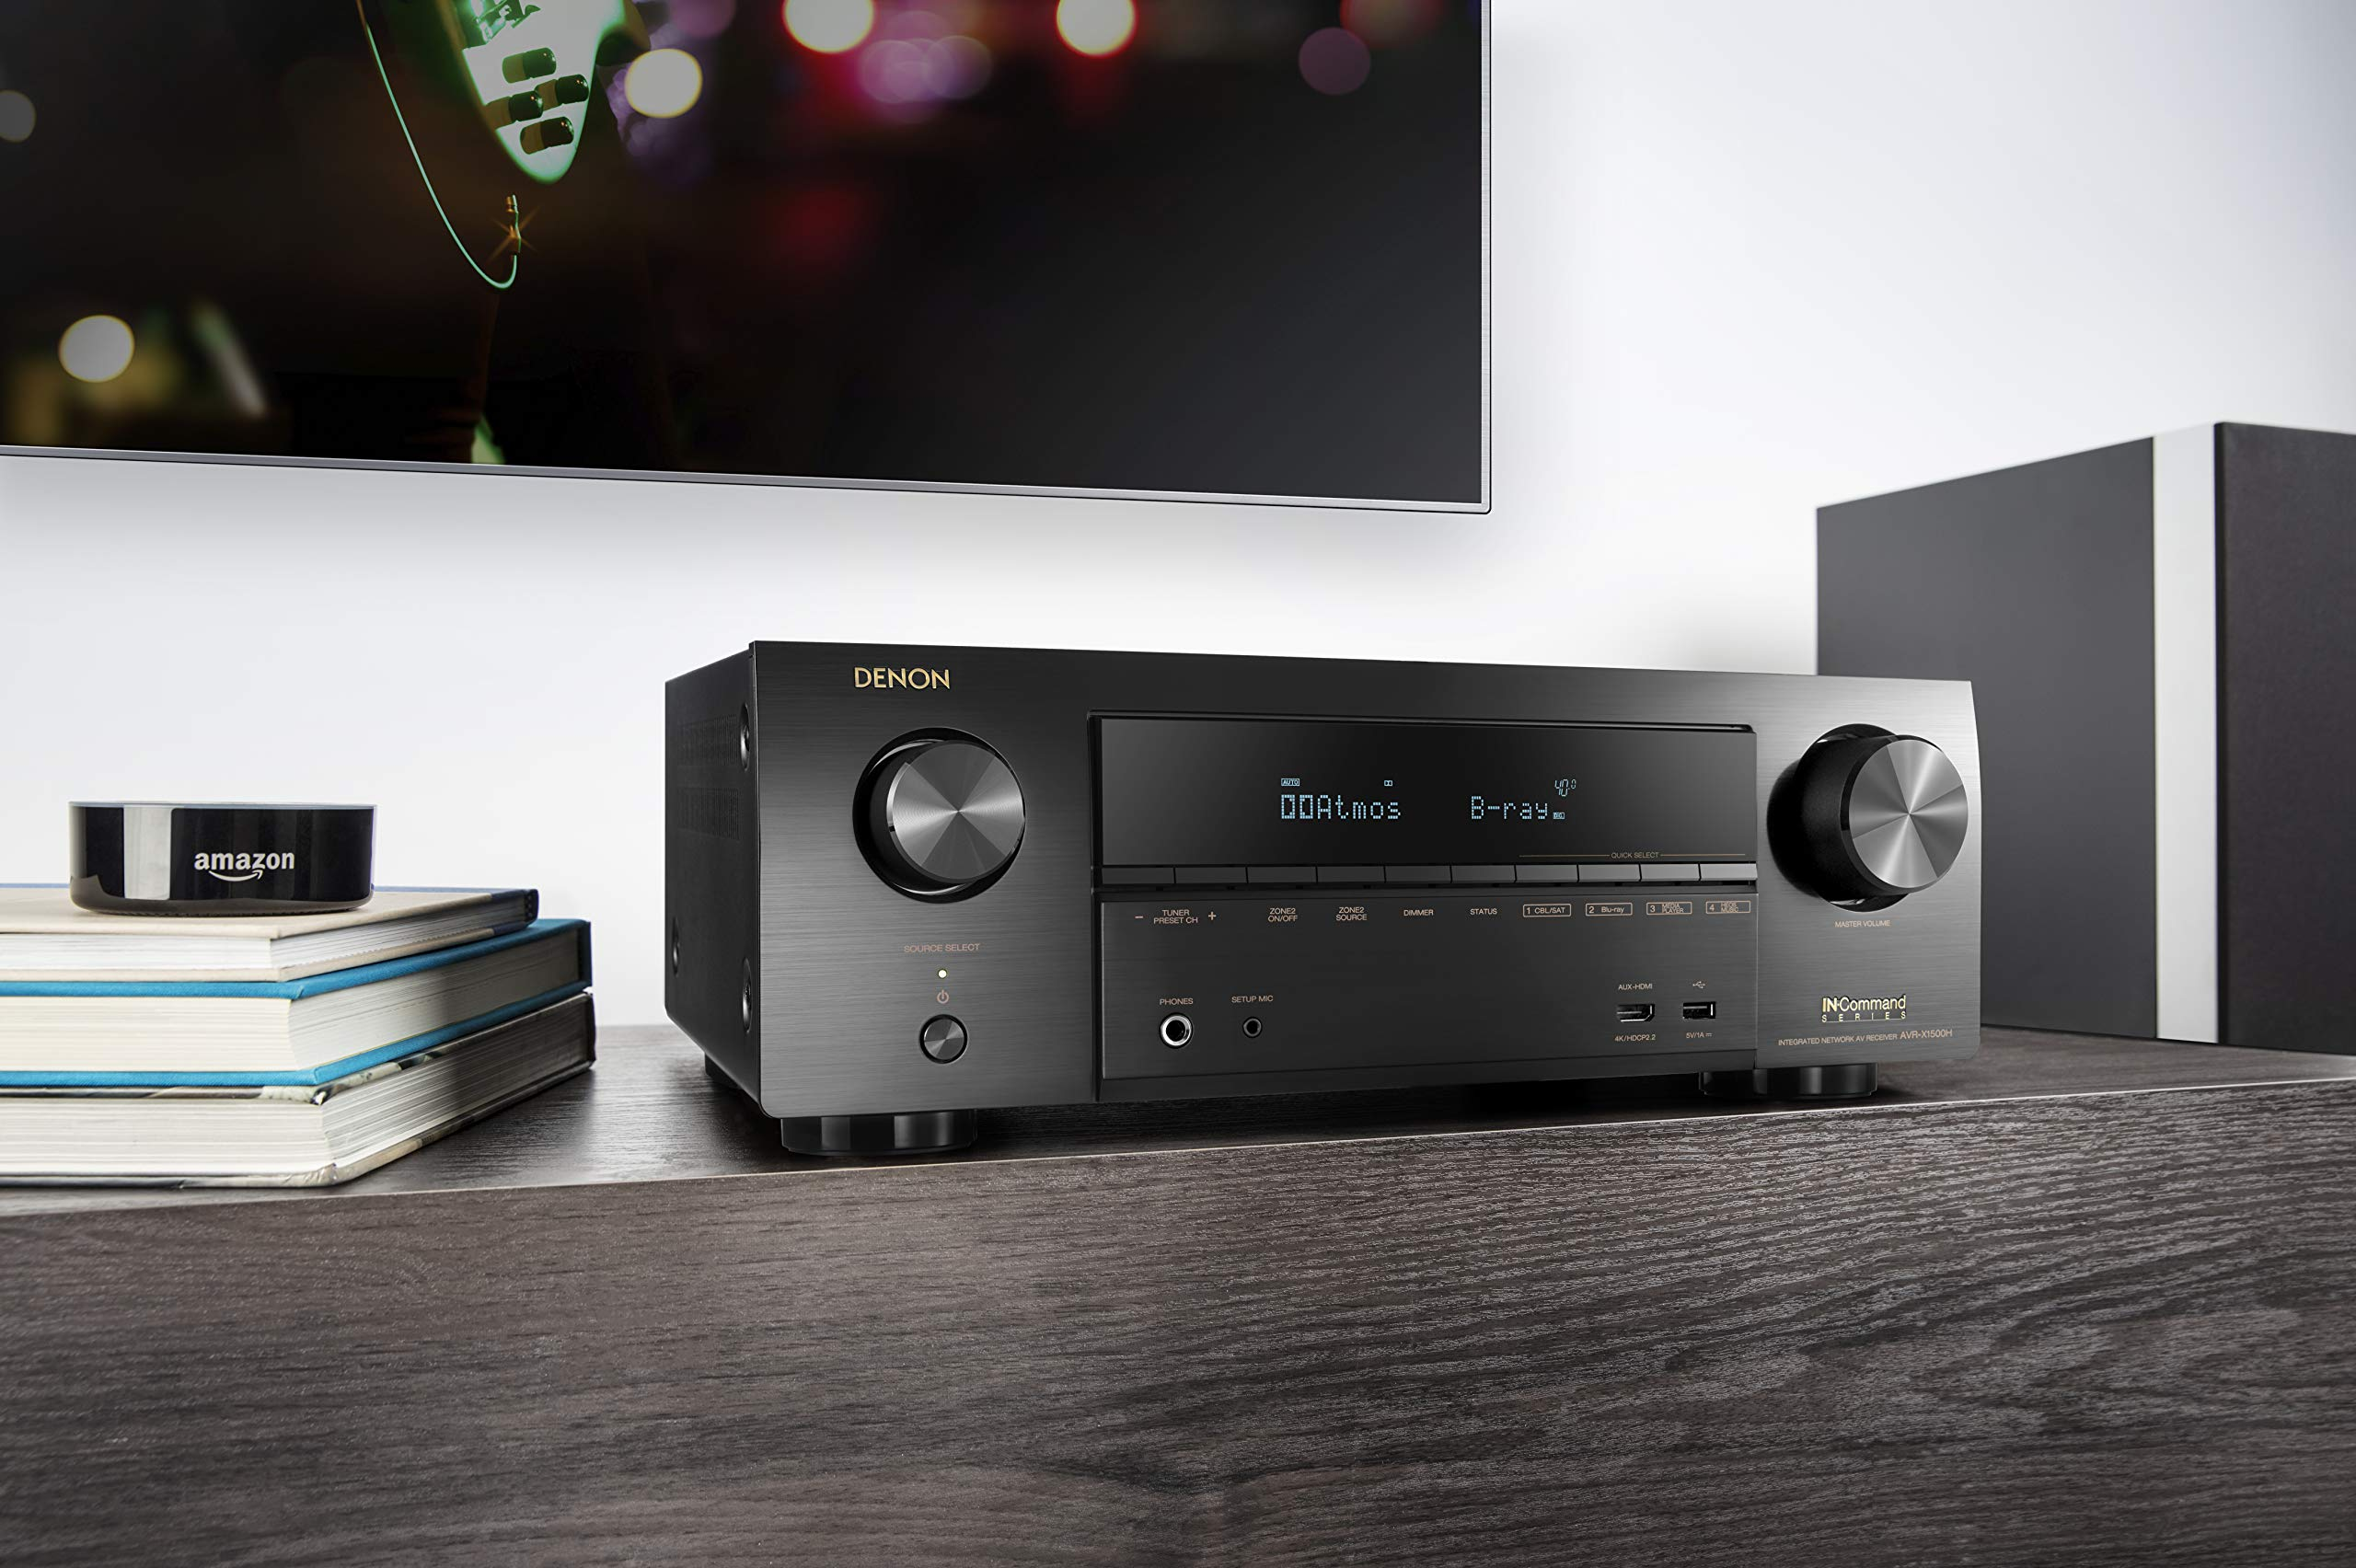 Denon AVR-X1500H Receiver - HDR10, 3D video support | 7.2 Channel (80W per channel) 4K Ultra HD Video | Home Theater Dolby Surround Sound | (Discontinued by Manufacturer)